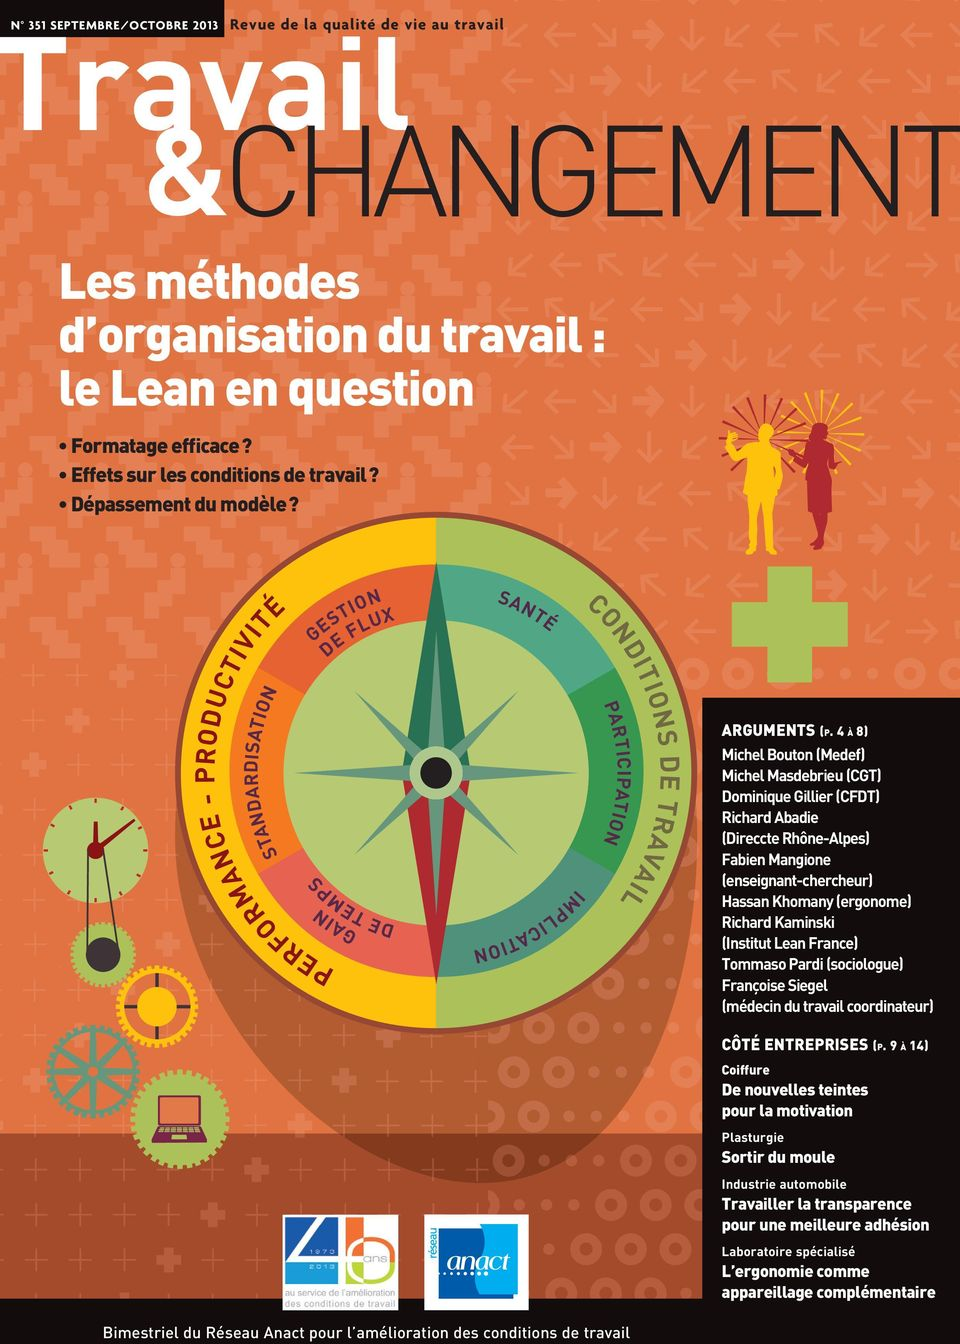 GESTION DE FLUX SANTÉ STANDARDISATION DE TEMPS GAIN PERFORMANCE - PRODUCTIVITÉ IMPLICATION CONDITIONS DE PARTICIPATION TRAVAIL ARGUMENTS (P.